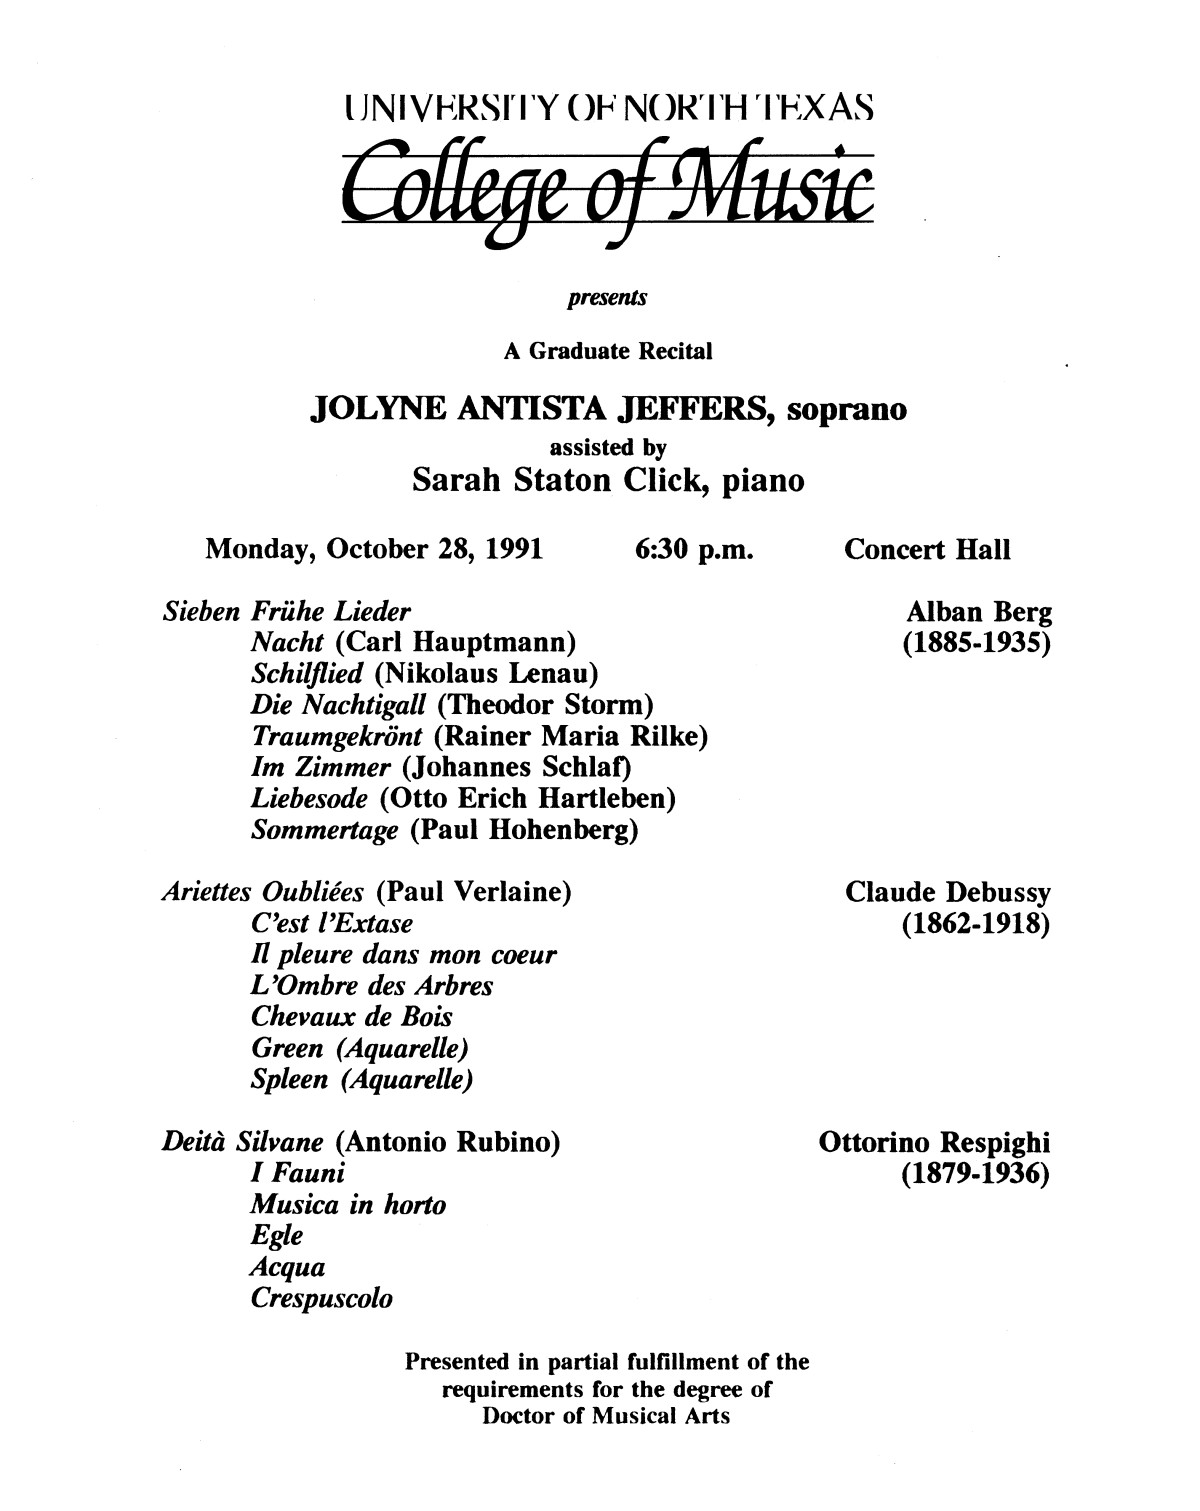 College of Music program book 1991-1992 Student Performances Vol. 2                                                                                                      [Sequence #]: 27 of 310